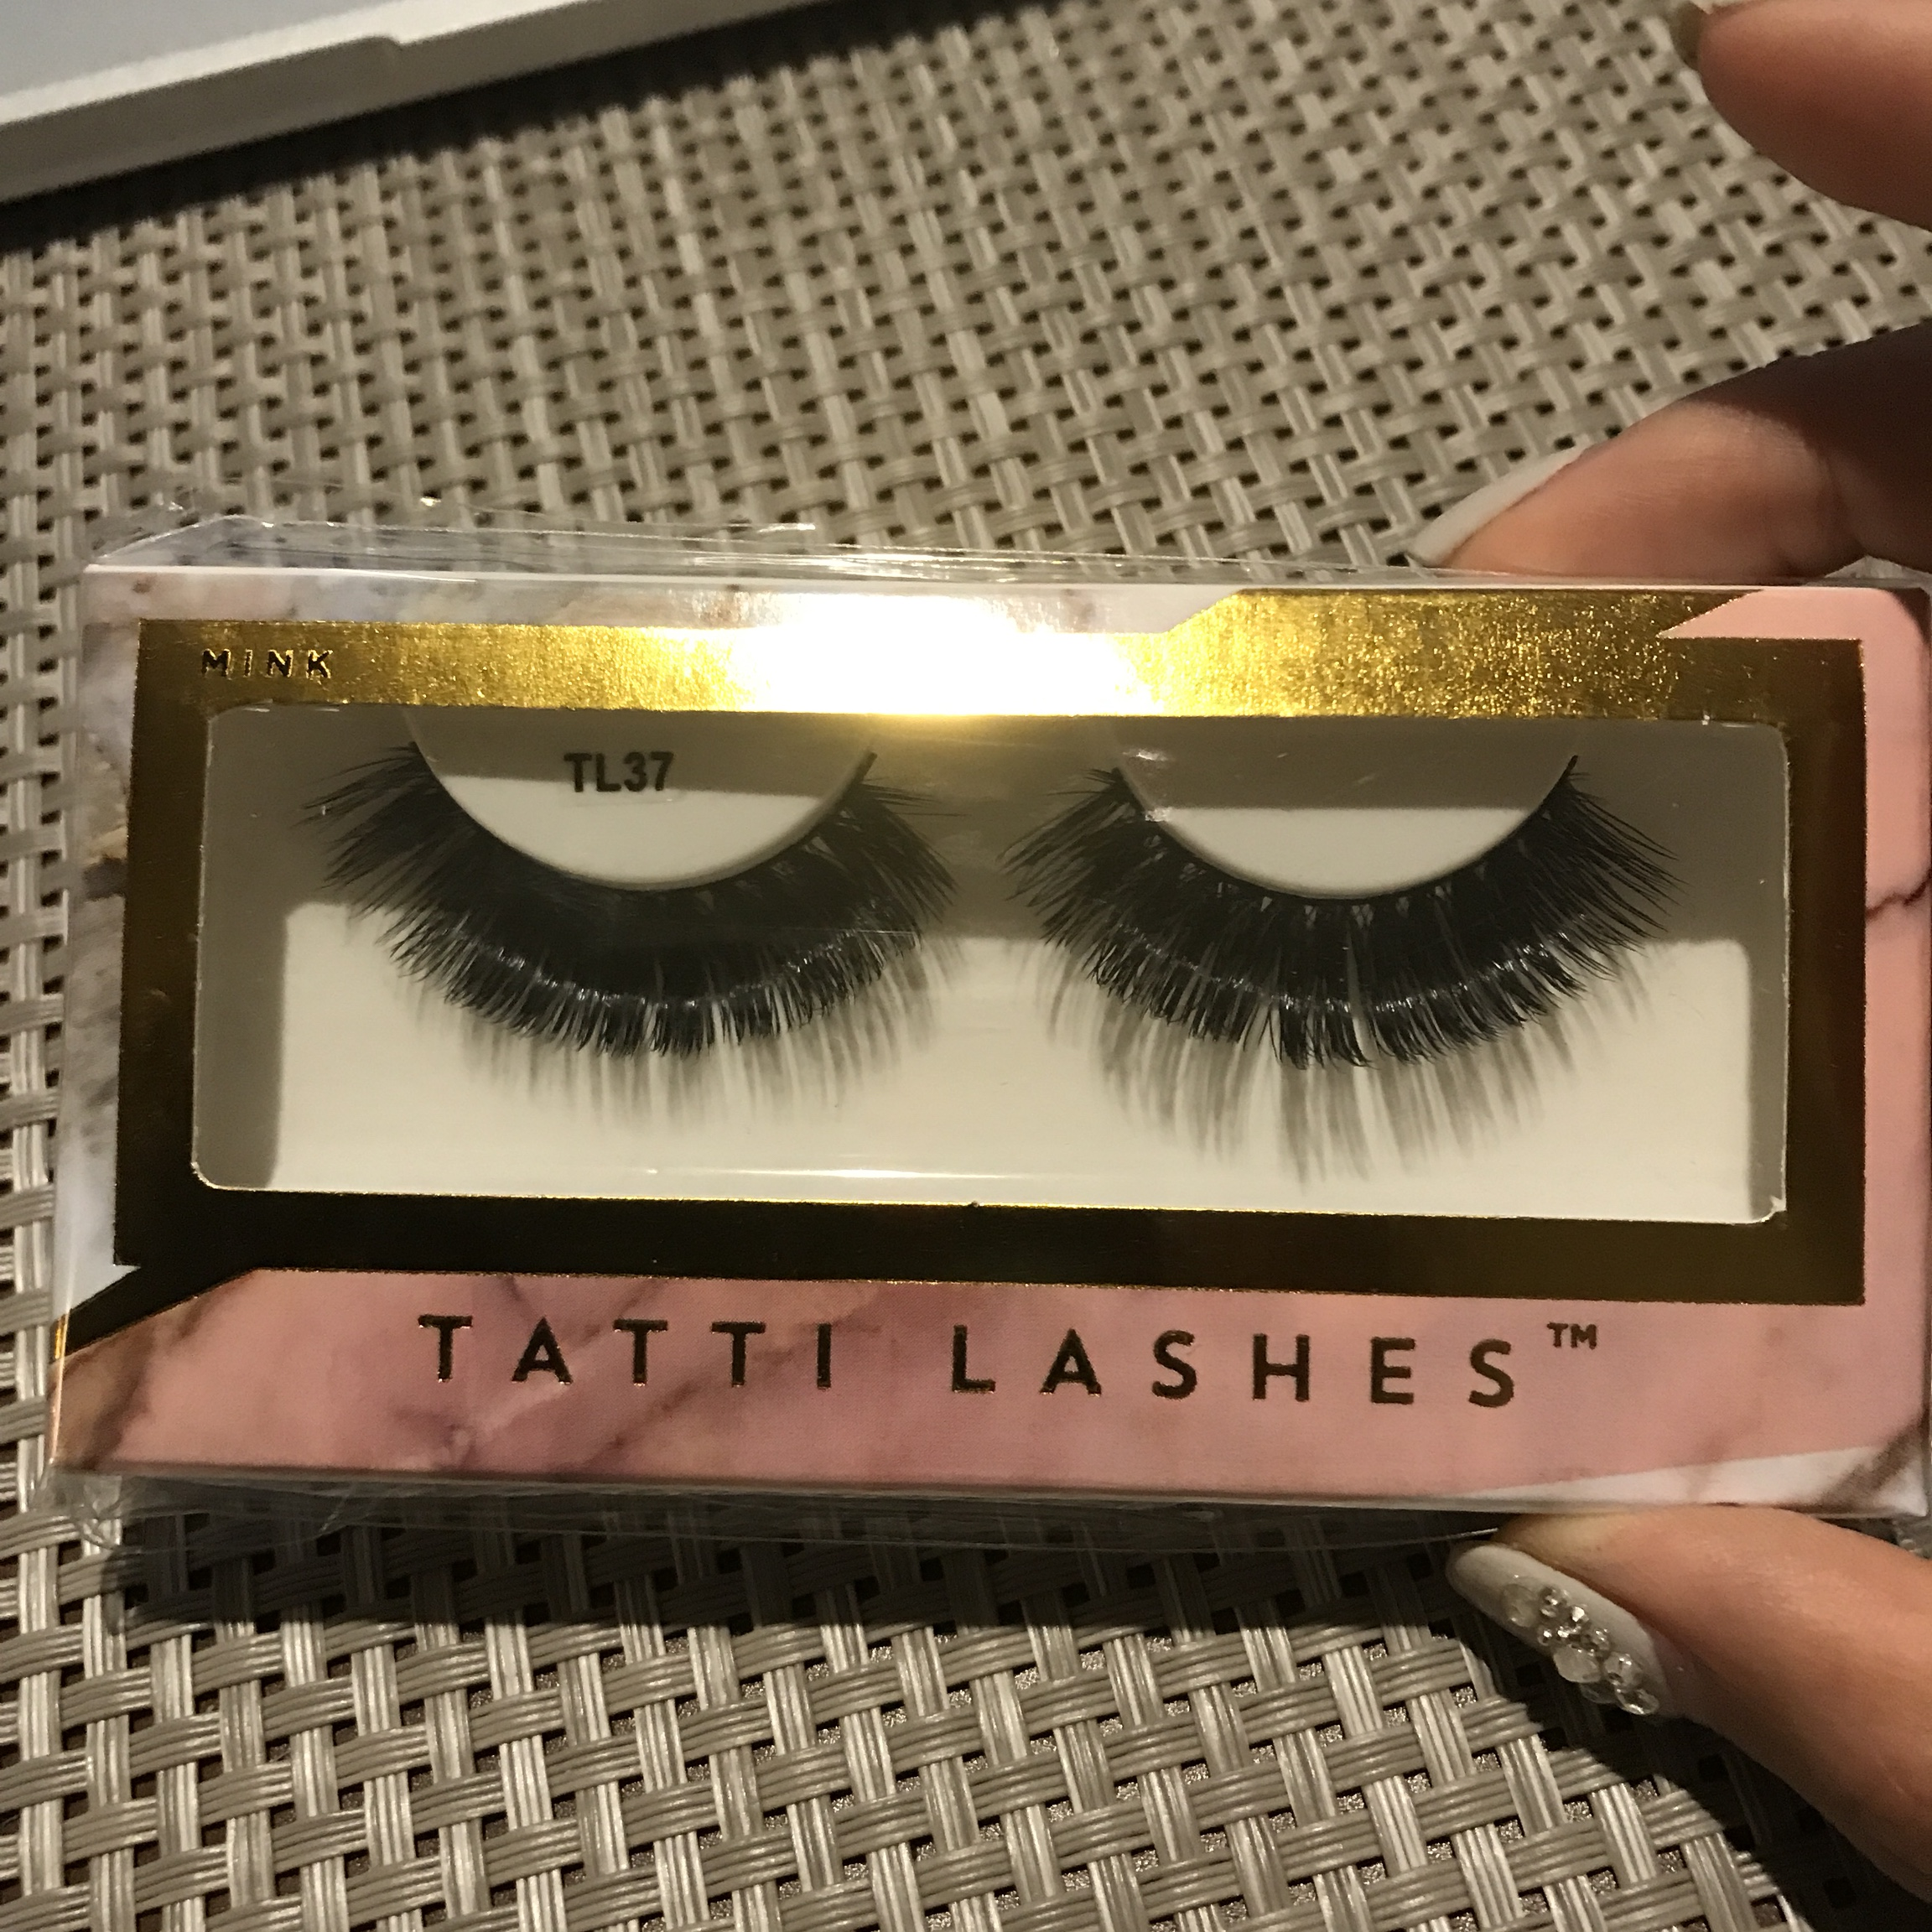 Genuine #tatti lashes TL37  It comes with a glue at    - Depop